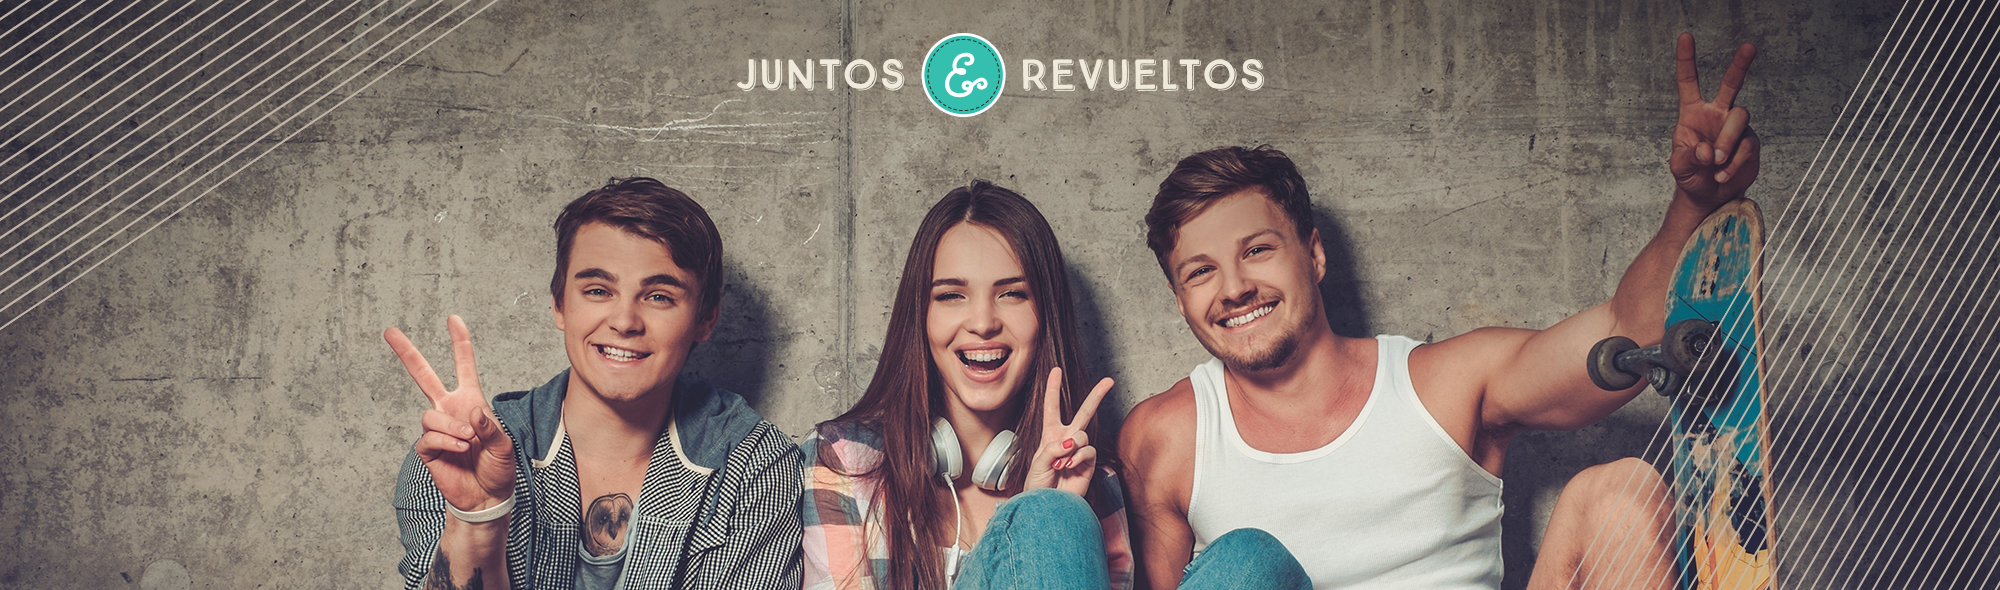 FriendlyMix Jovenes